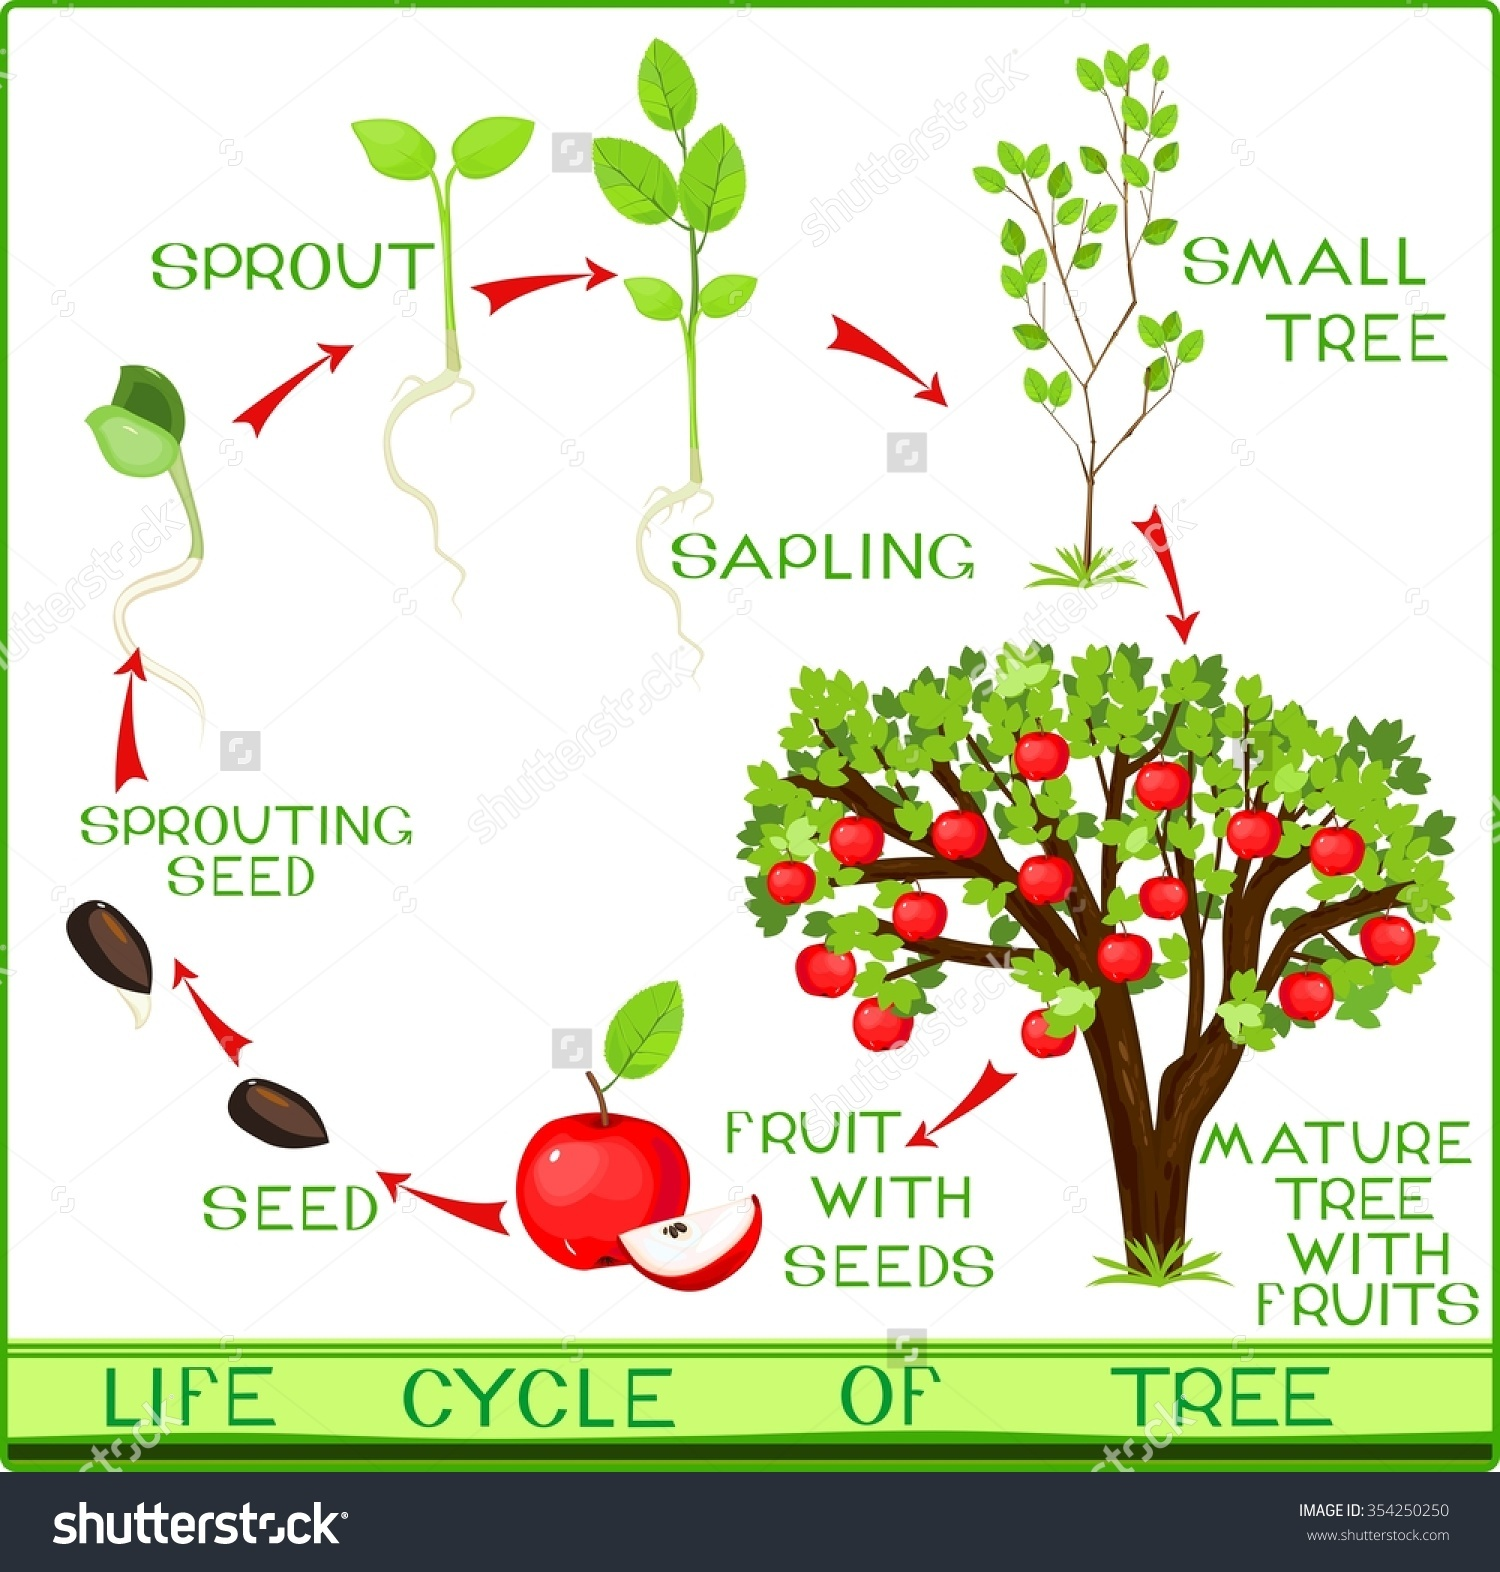 Apple tree cycle clipart. Clipartfest save to a